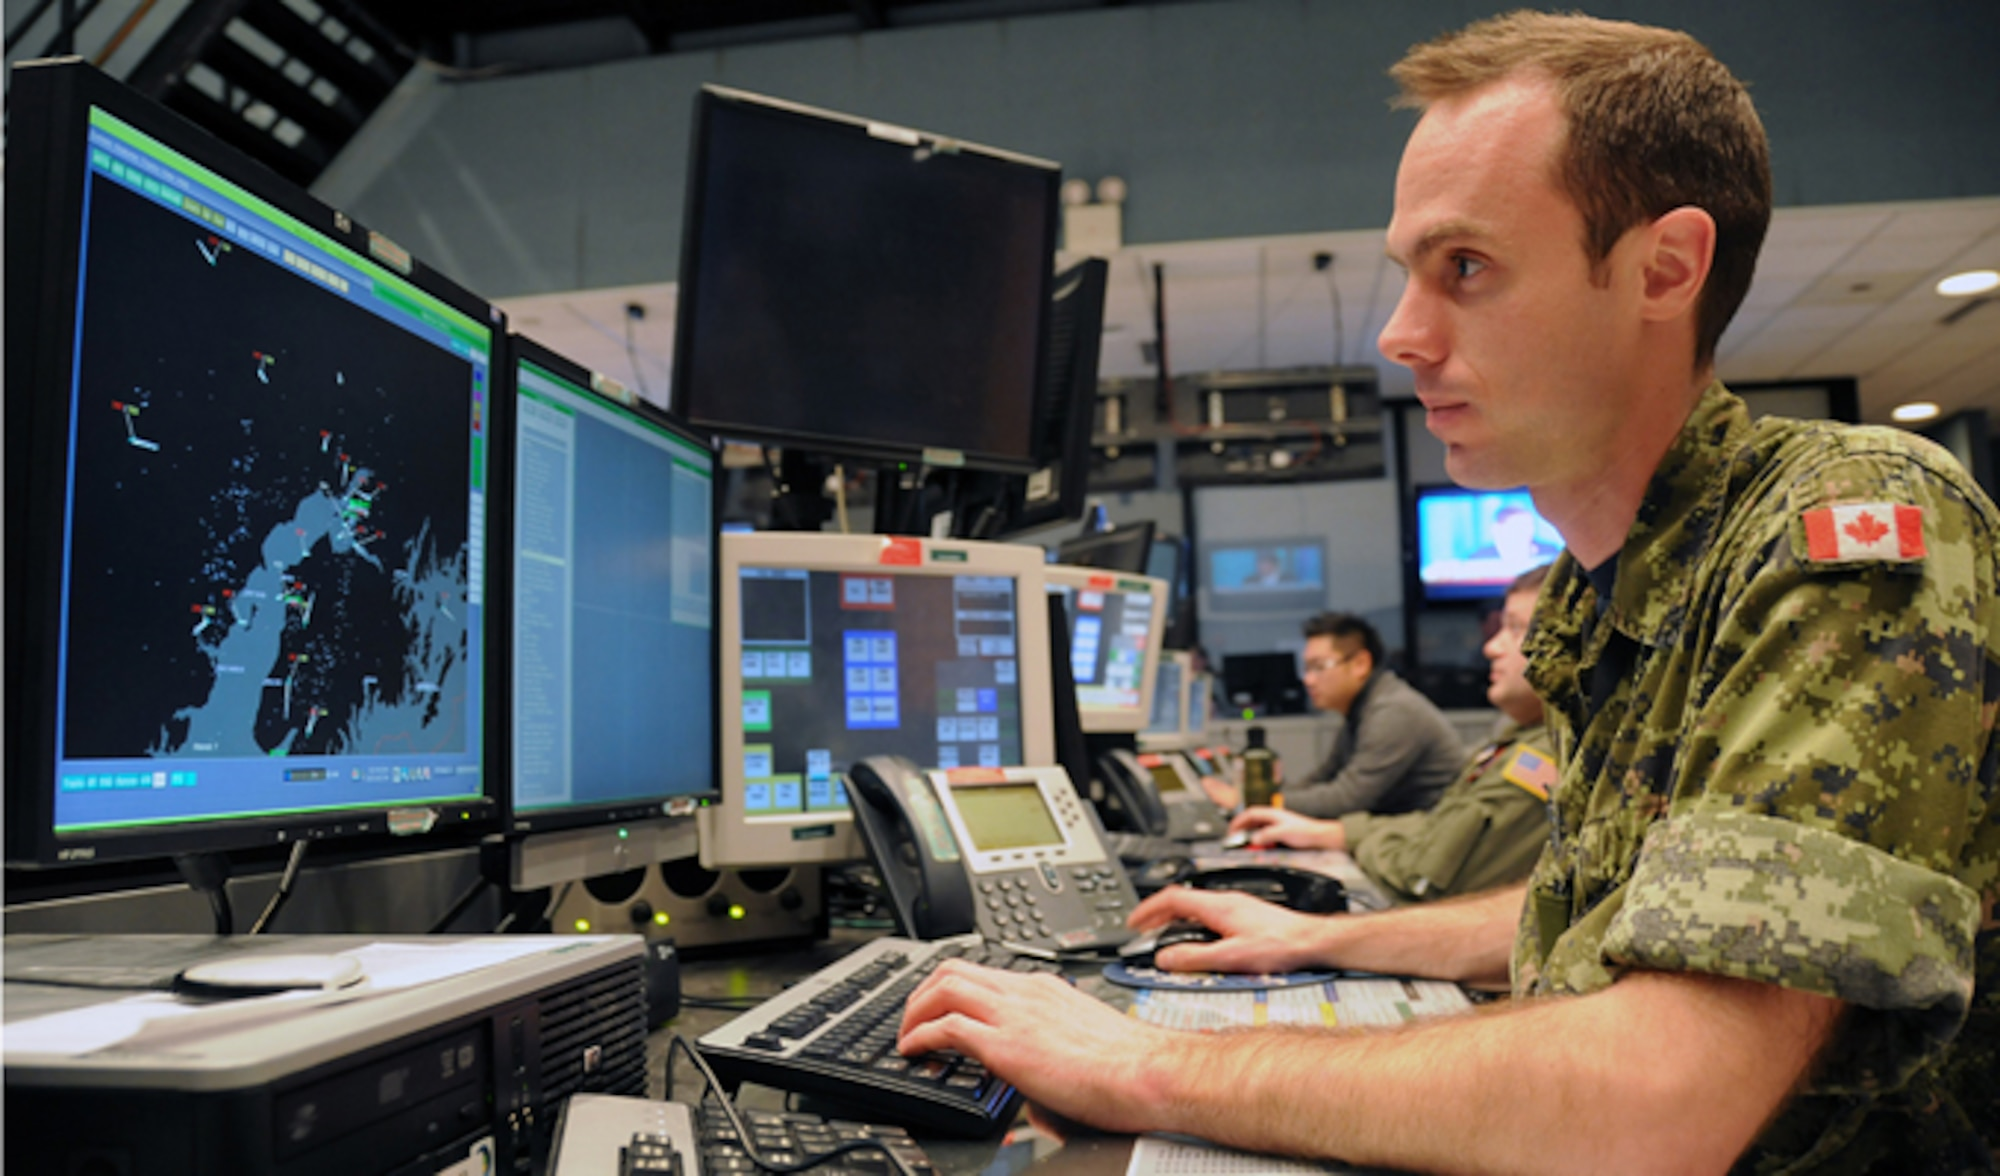 Royal Canadian air force Capt. Dave Gosselin tracks aircraft in Alaska air space ensuring air sovereignty in the Alaskan NORAD Region Regional Air Operations Center. U.S. and Canadian service members utilize 15 radar stations to monitor Santa as he traverses the airspace around the northern latitudes of North America, a mission ANR has successfully accomplished for 50 years. (U.S. Air Force photo/Tech. Sgt. John Gordinier)